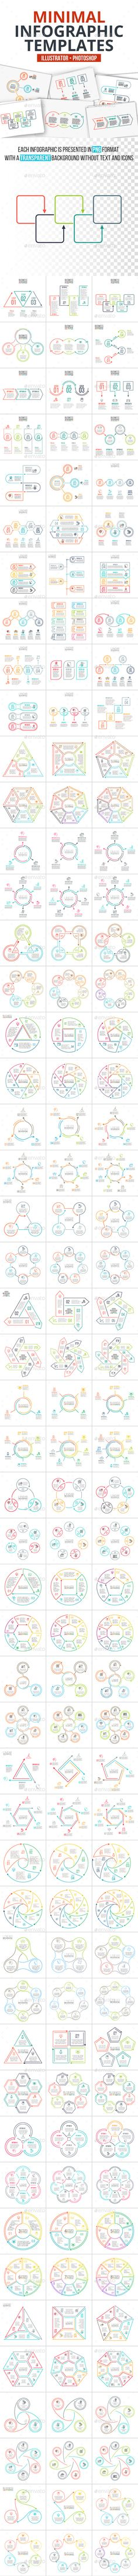 Minimal Infographics Pack - Templates PSD, Transparent PNG, Vector EPS, AI Illustrator